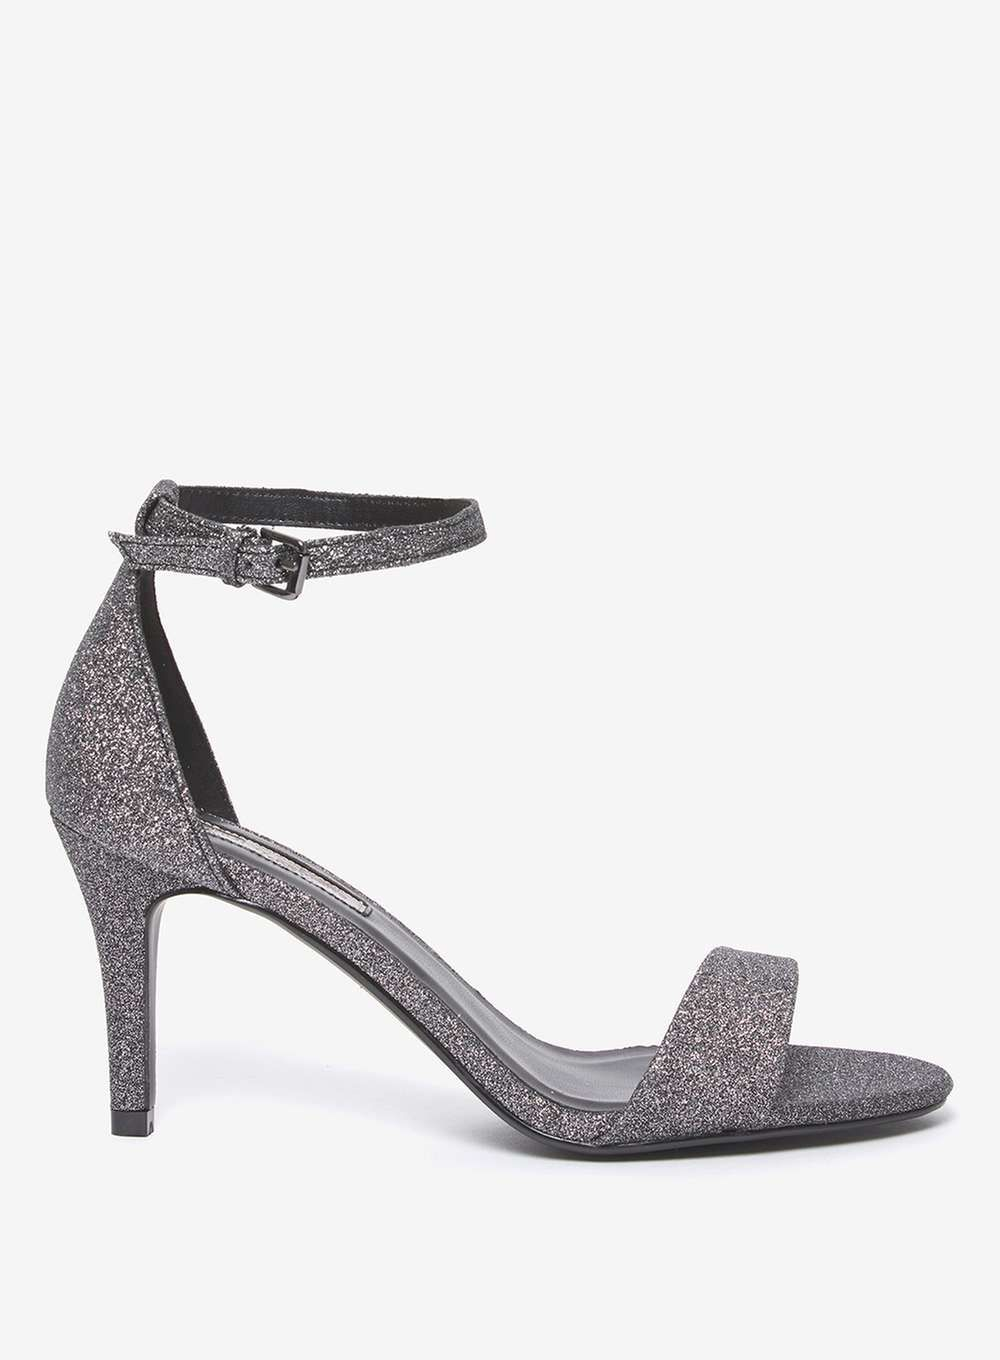 5db2c793de9d6 Pewter Silver Wedding Shoes With a Low Heel | Dorothy Perkins UK Affiliate